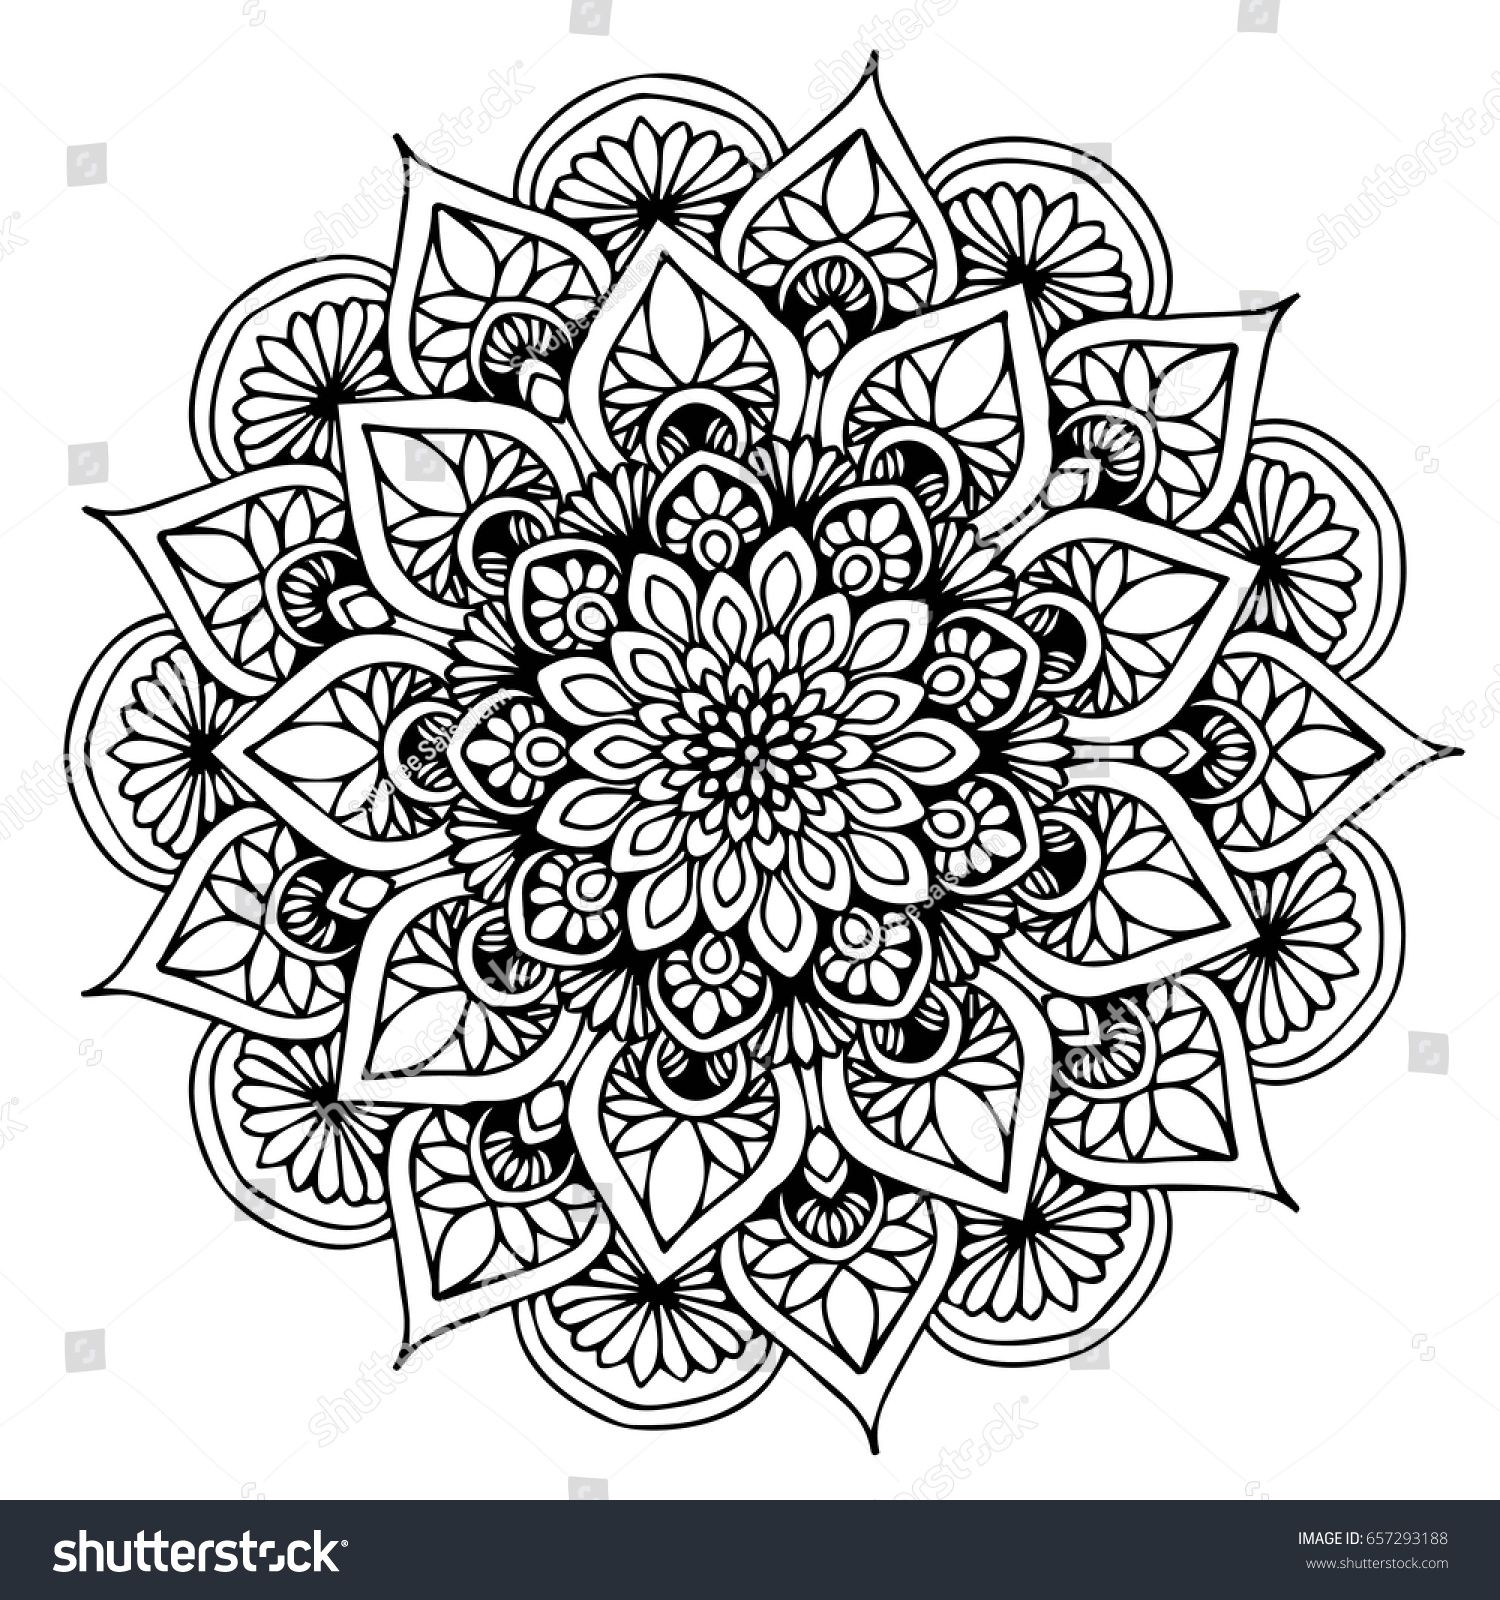 Mandalas For Coloring Book Decorative Round Ornaments Unusual Flower Shape Oriental Vector Mandala Tattoo Design Mandala Design Art Mandala Coloring Pages